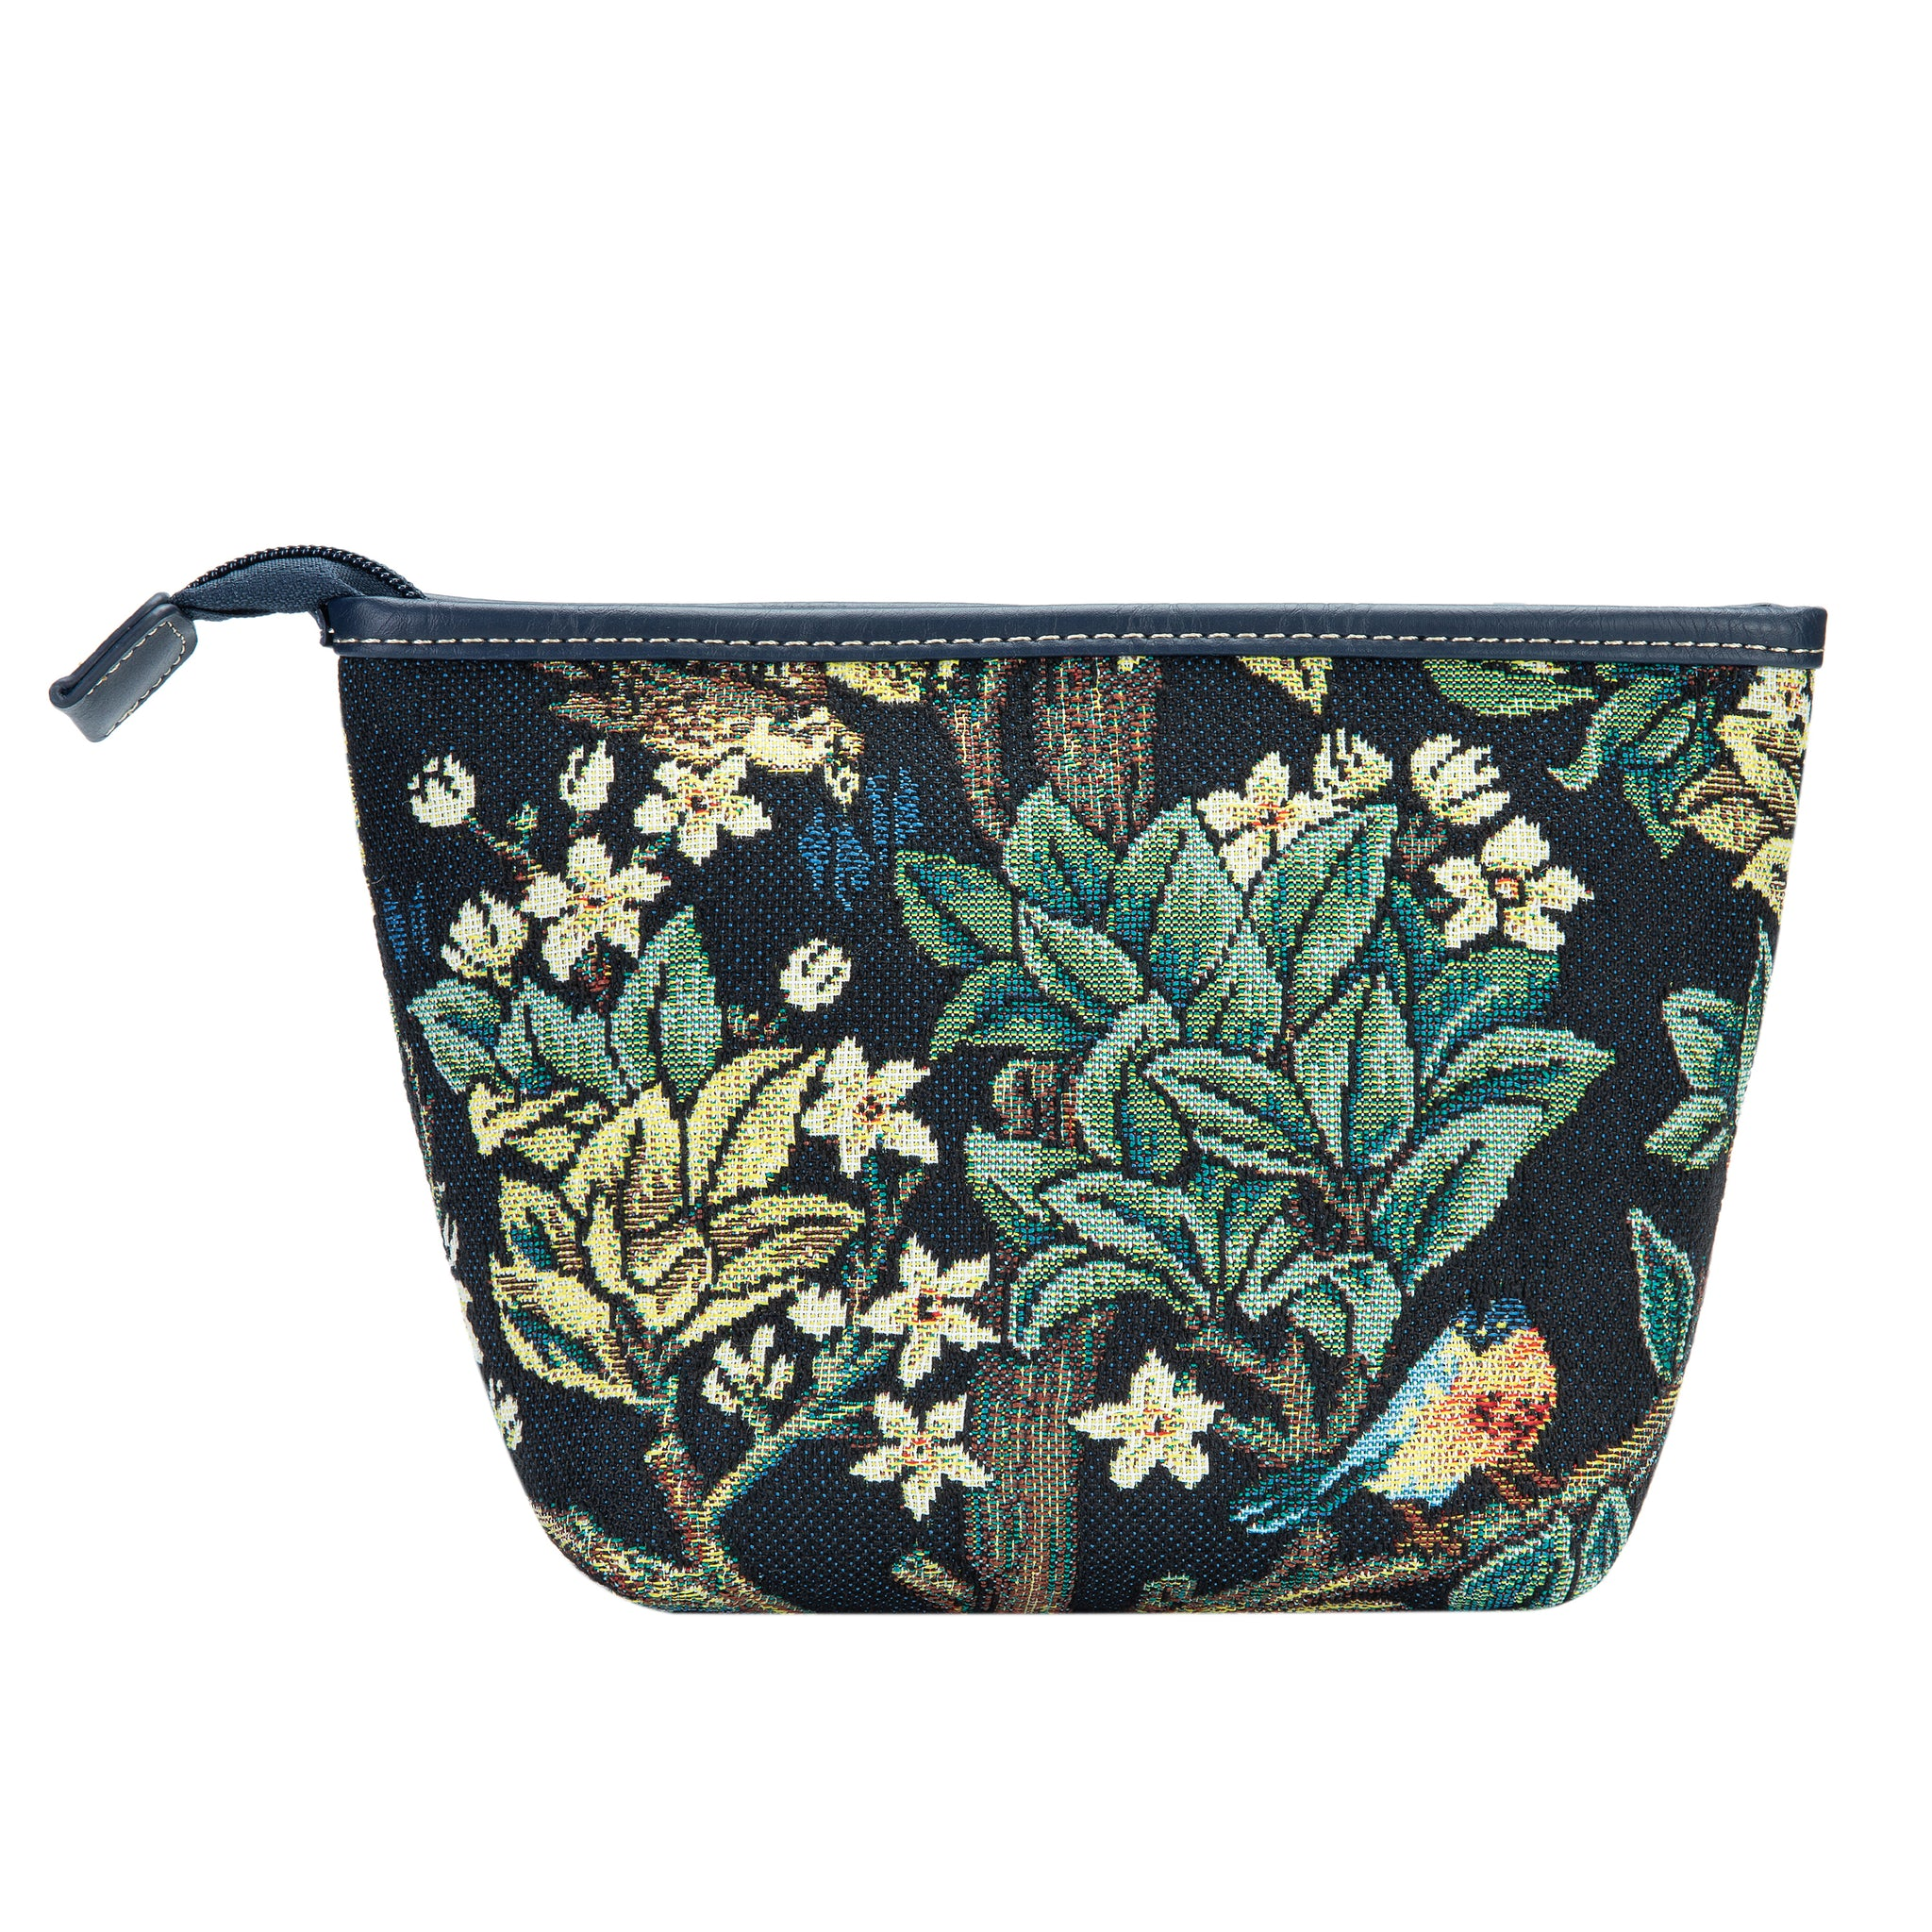 MAKEUP-ART-WM-TLBL | WILLIAM MORRIS TREE OF LIFE BLUE  MAKE UP COSMETIC BAG - www.signareusa.com